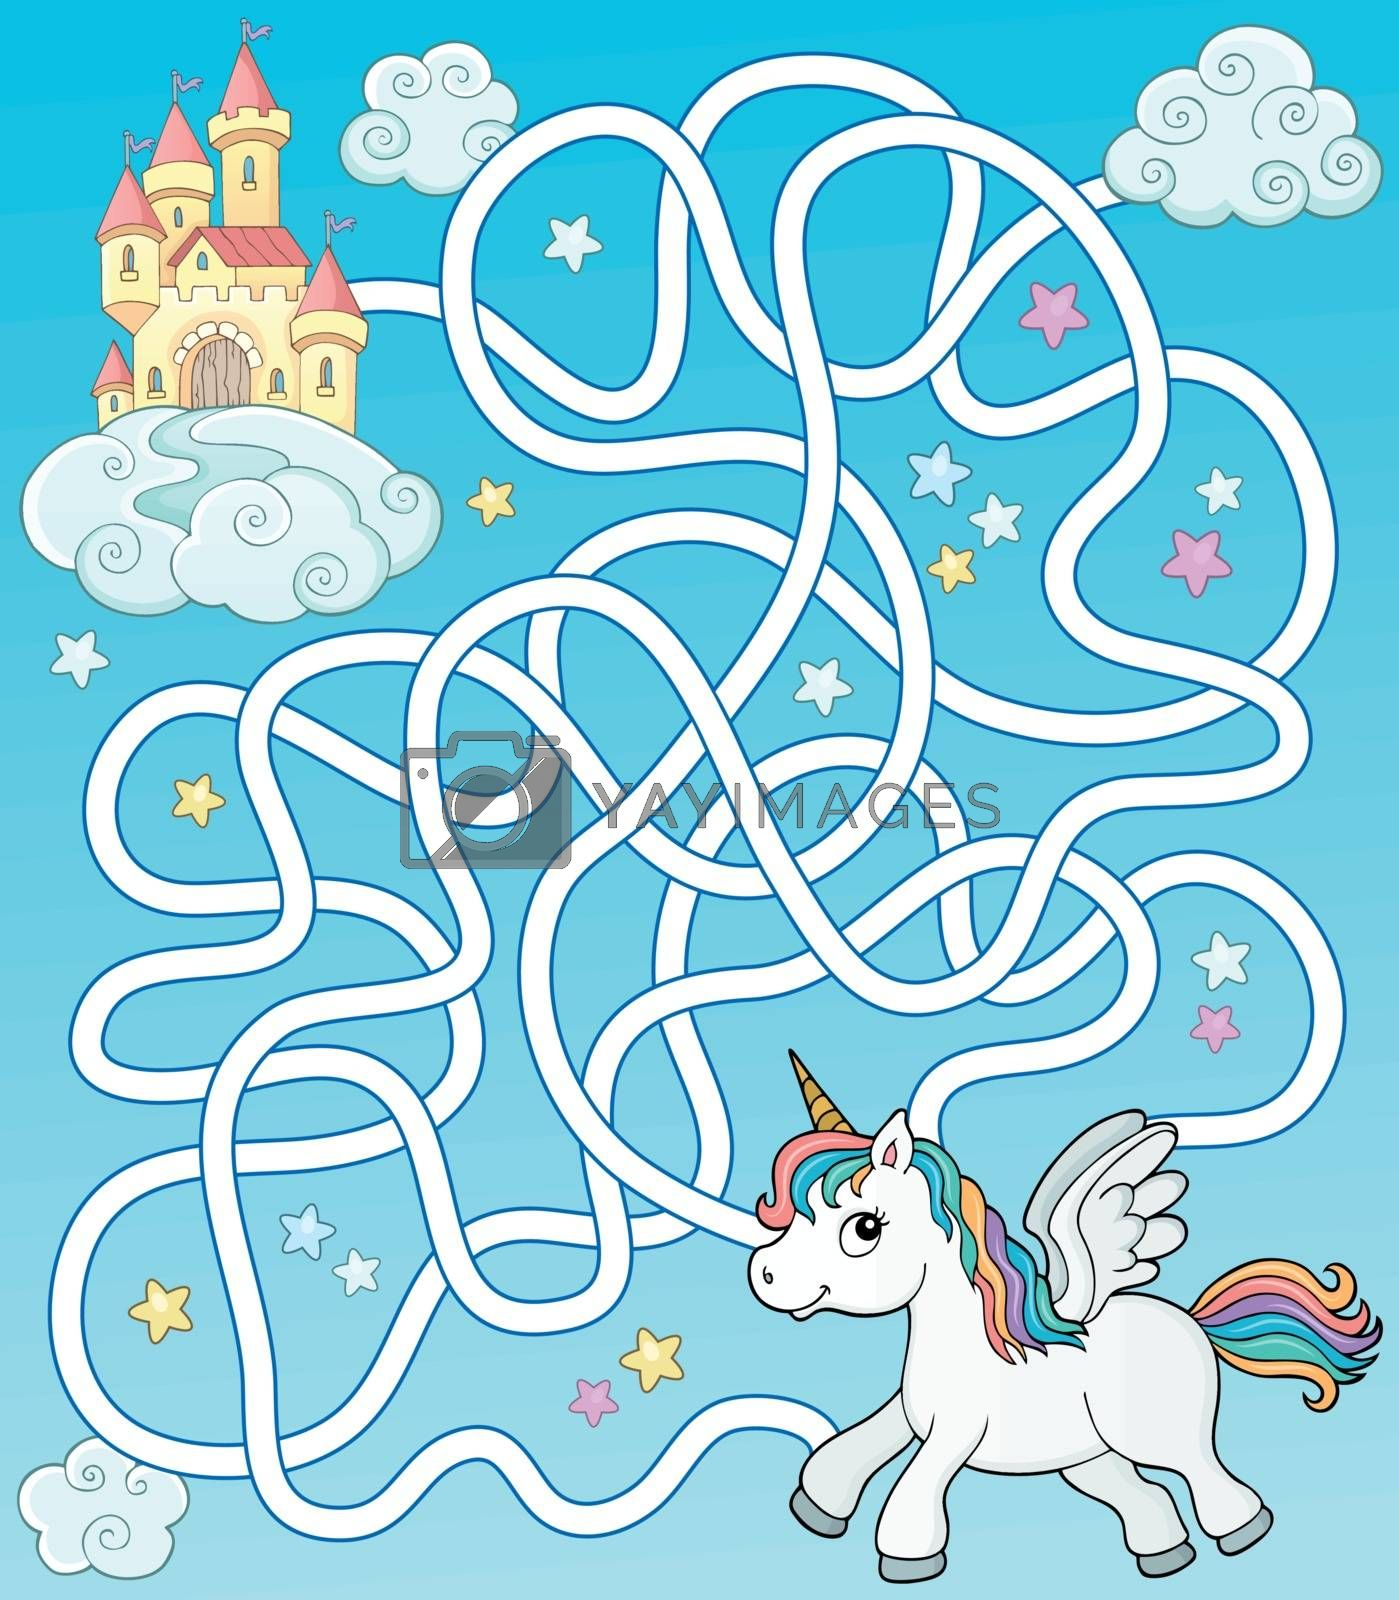 Maze 35 with flying unicorn and castle - eps10 vector illustration.